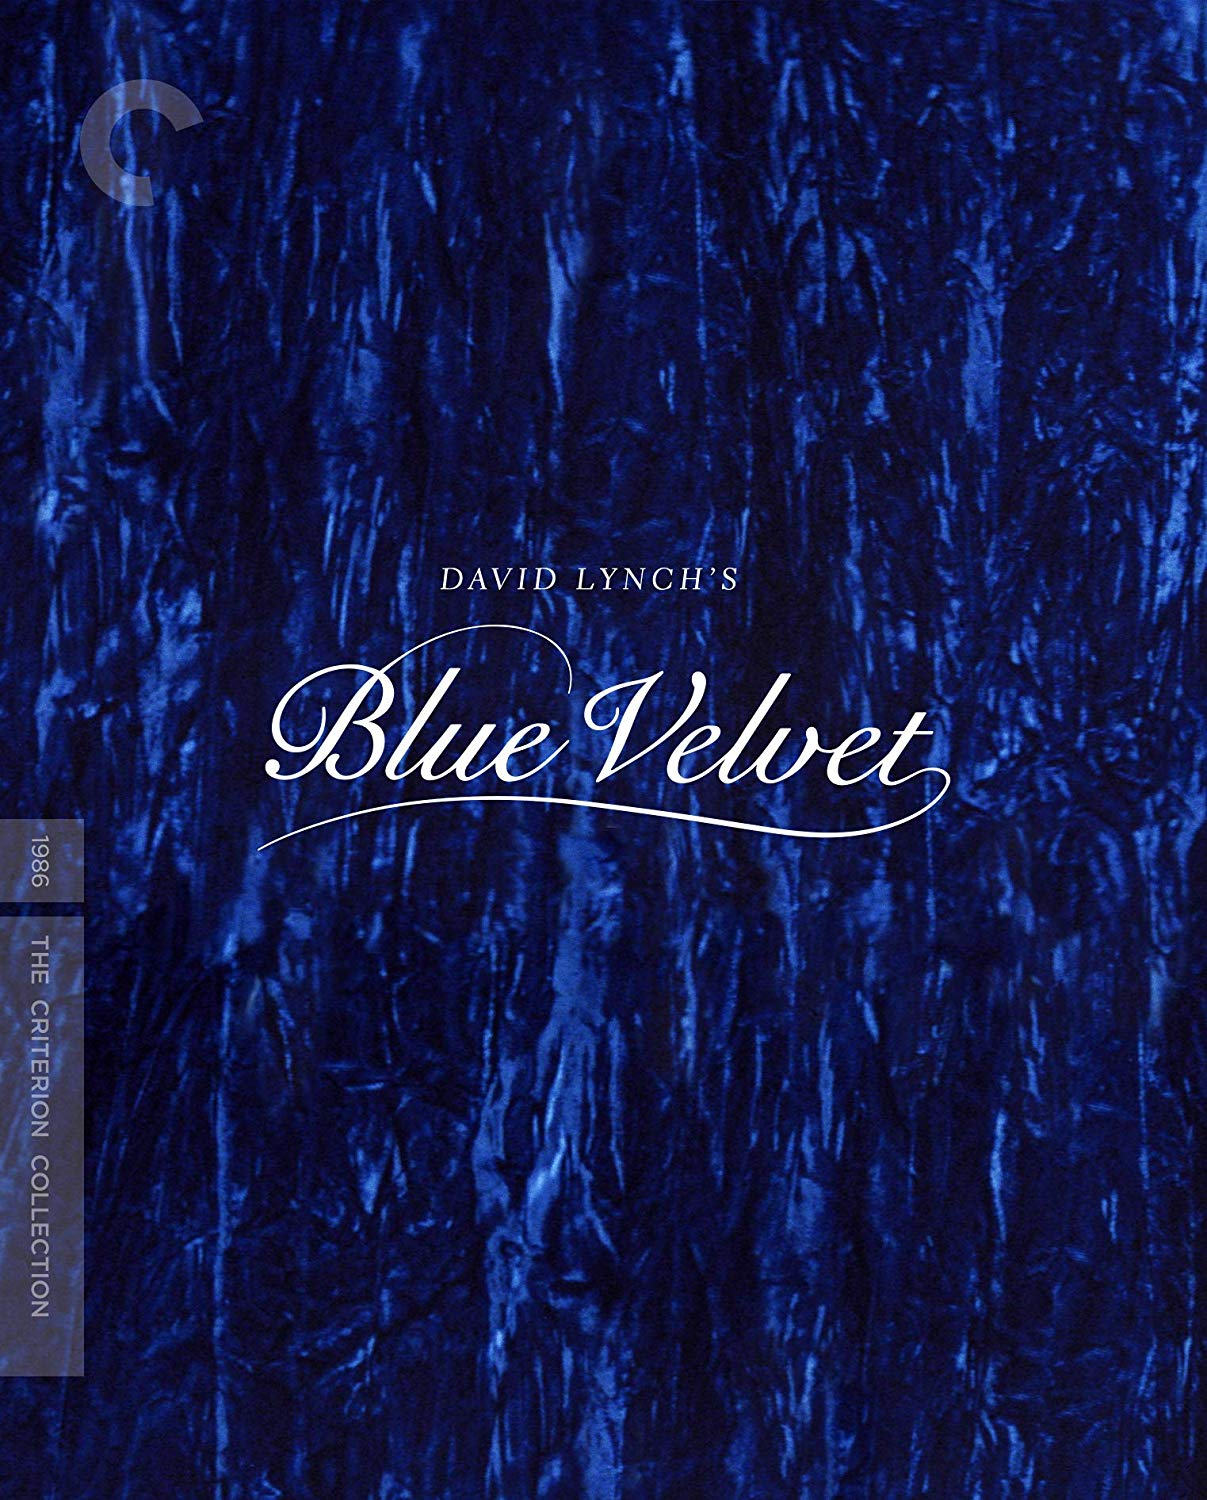 Blue Velvet (1986) - Directed by: David LynchStarring: Kyle MacLachlan, Isabella Rossellini, Dennis Hopper, Laura Dern, Frances Bay, Dean Stockwell, Jack Nance, Hope Lange, George DickersonRated: RRunning Time: 2 hTMM Score: 4 stars out of 5STRENGTHS: Directing, Style, StoryWEAKNESSES: Pacing, Lynchian-lite